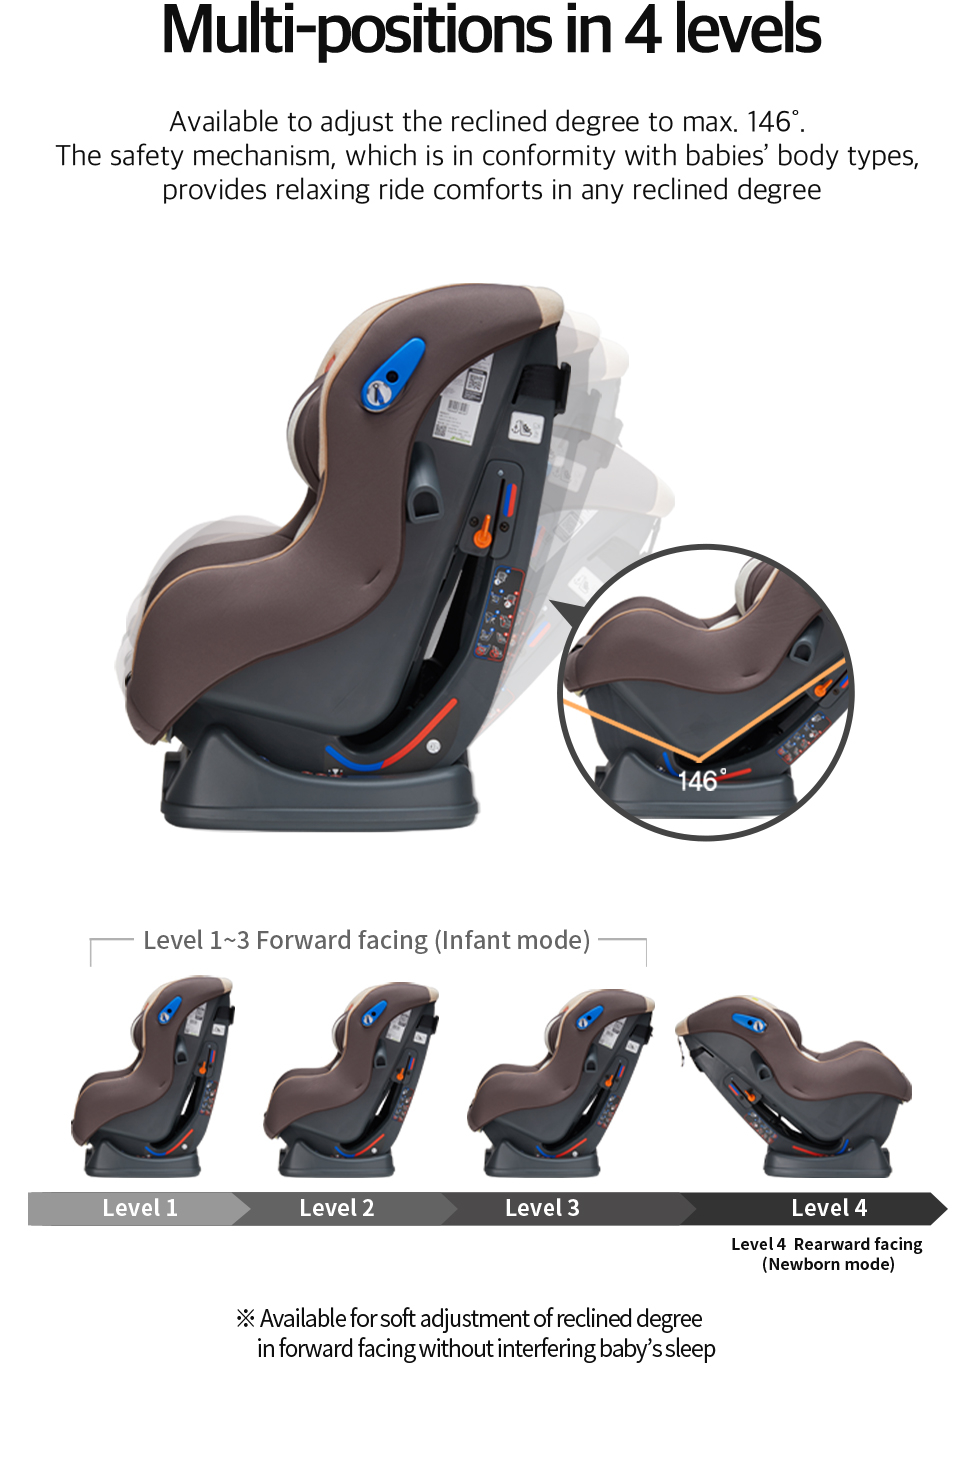 Available to adjust the reclined degree to max. 146˚. The safety mechanism, which is in conformity with babies' body types, provides relaxing ride comforts in any reclined degree.